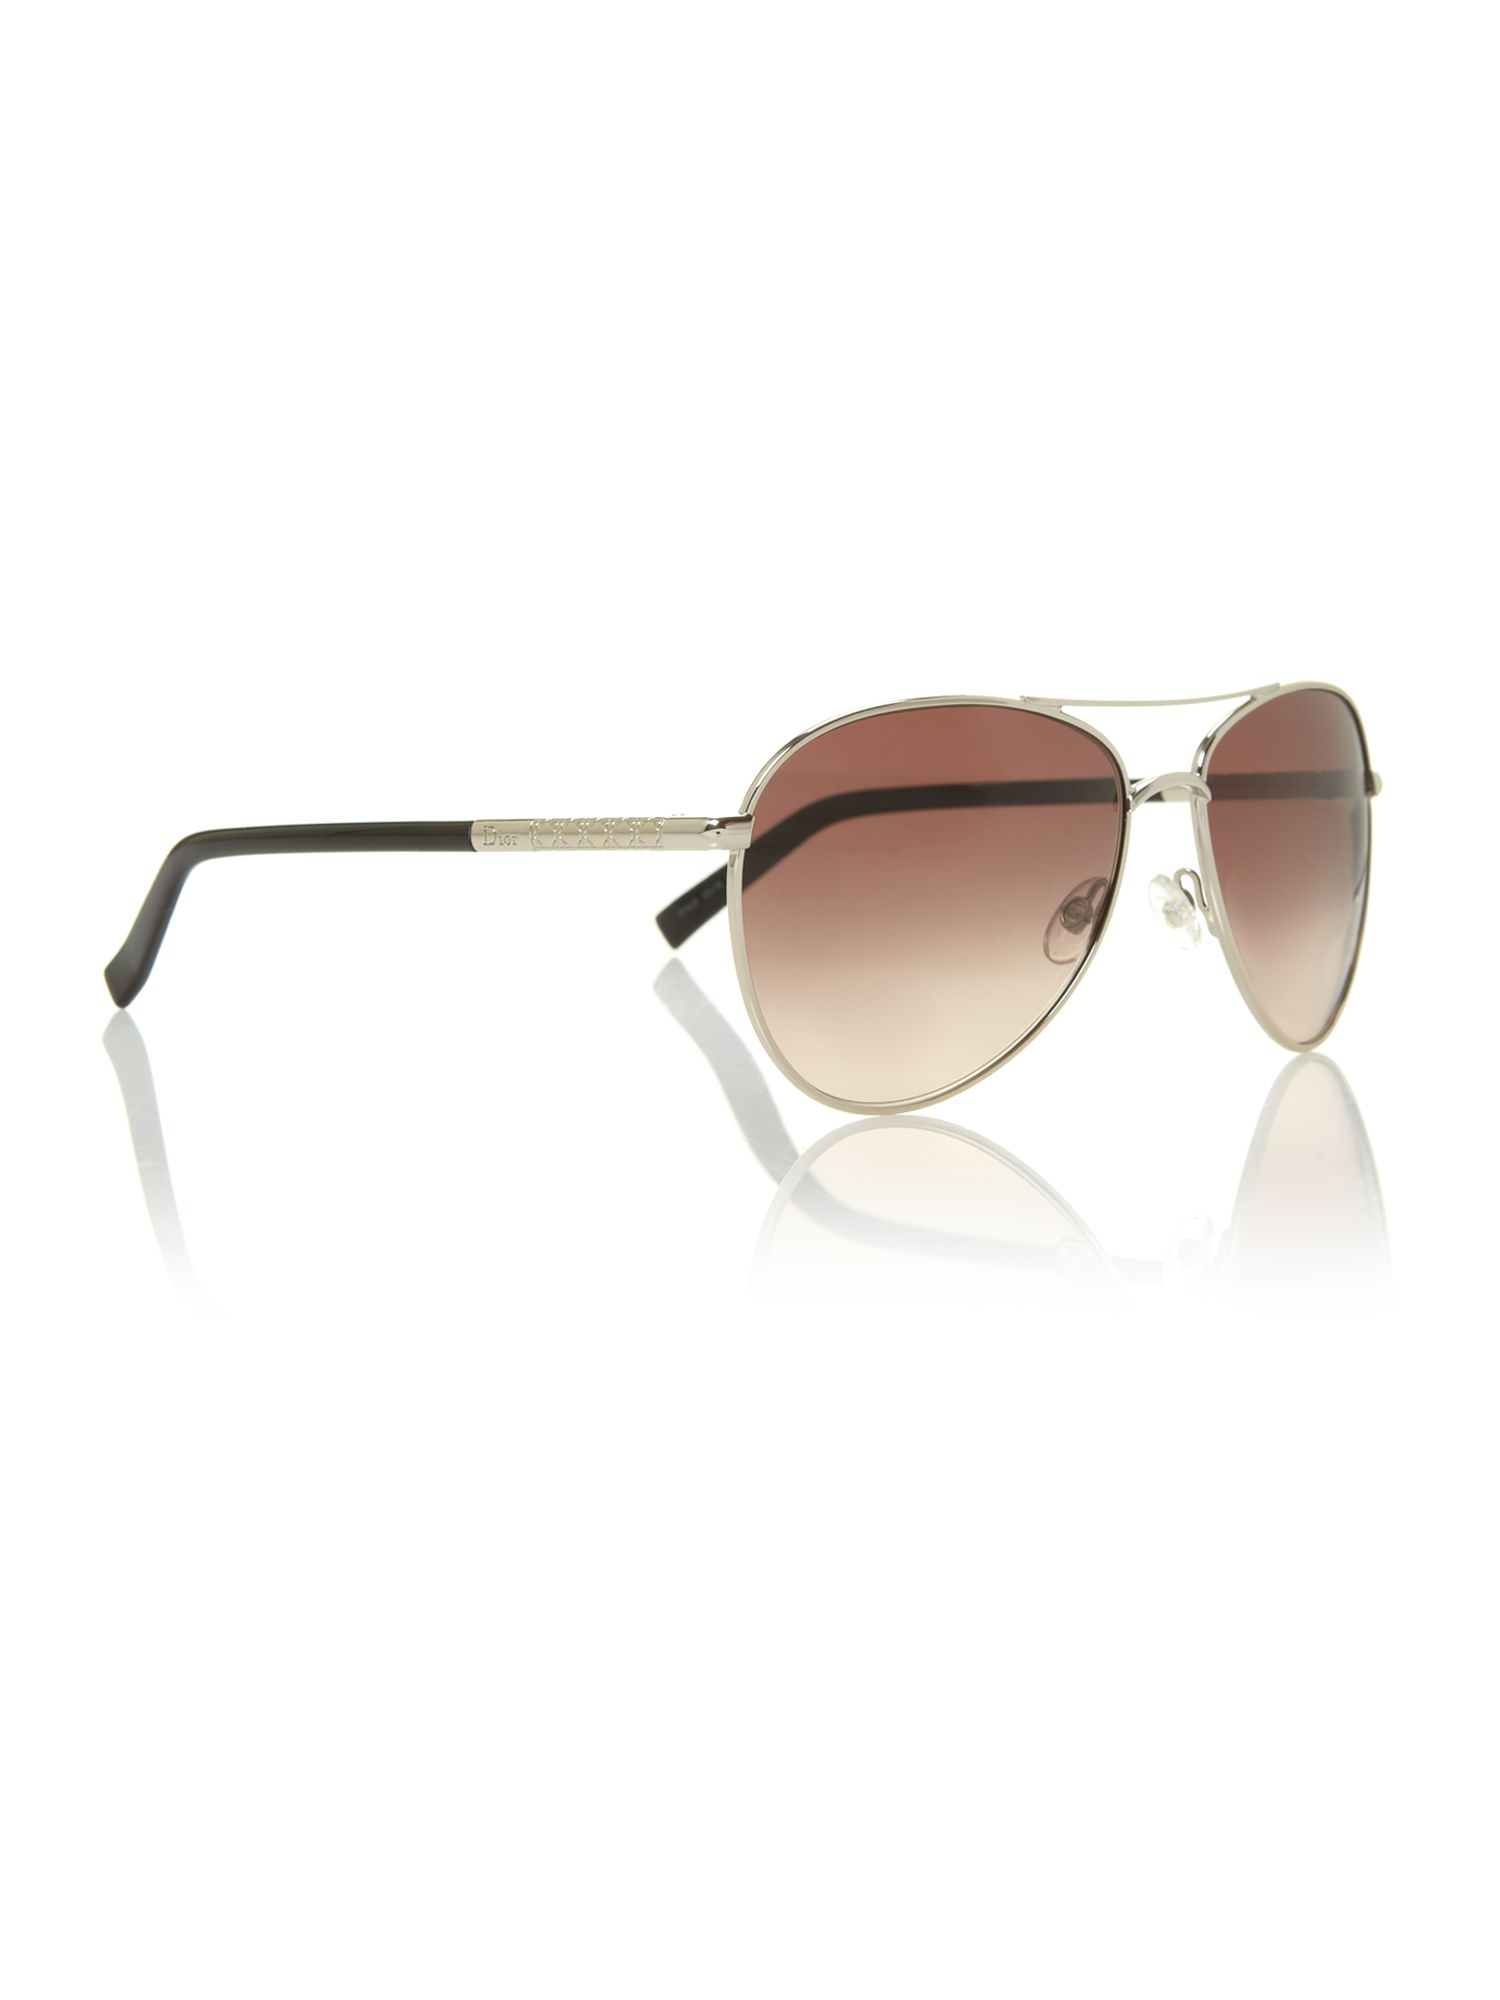 Ladies PICCADILY2 light gold aviator sunglasses